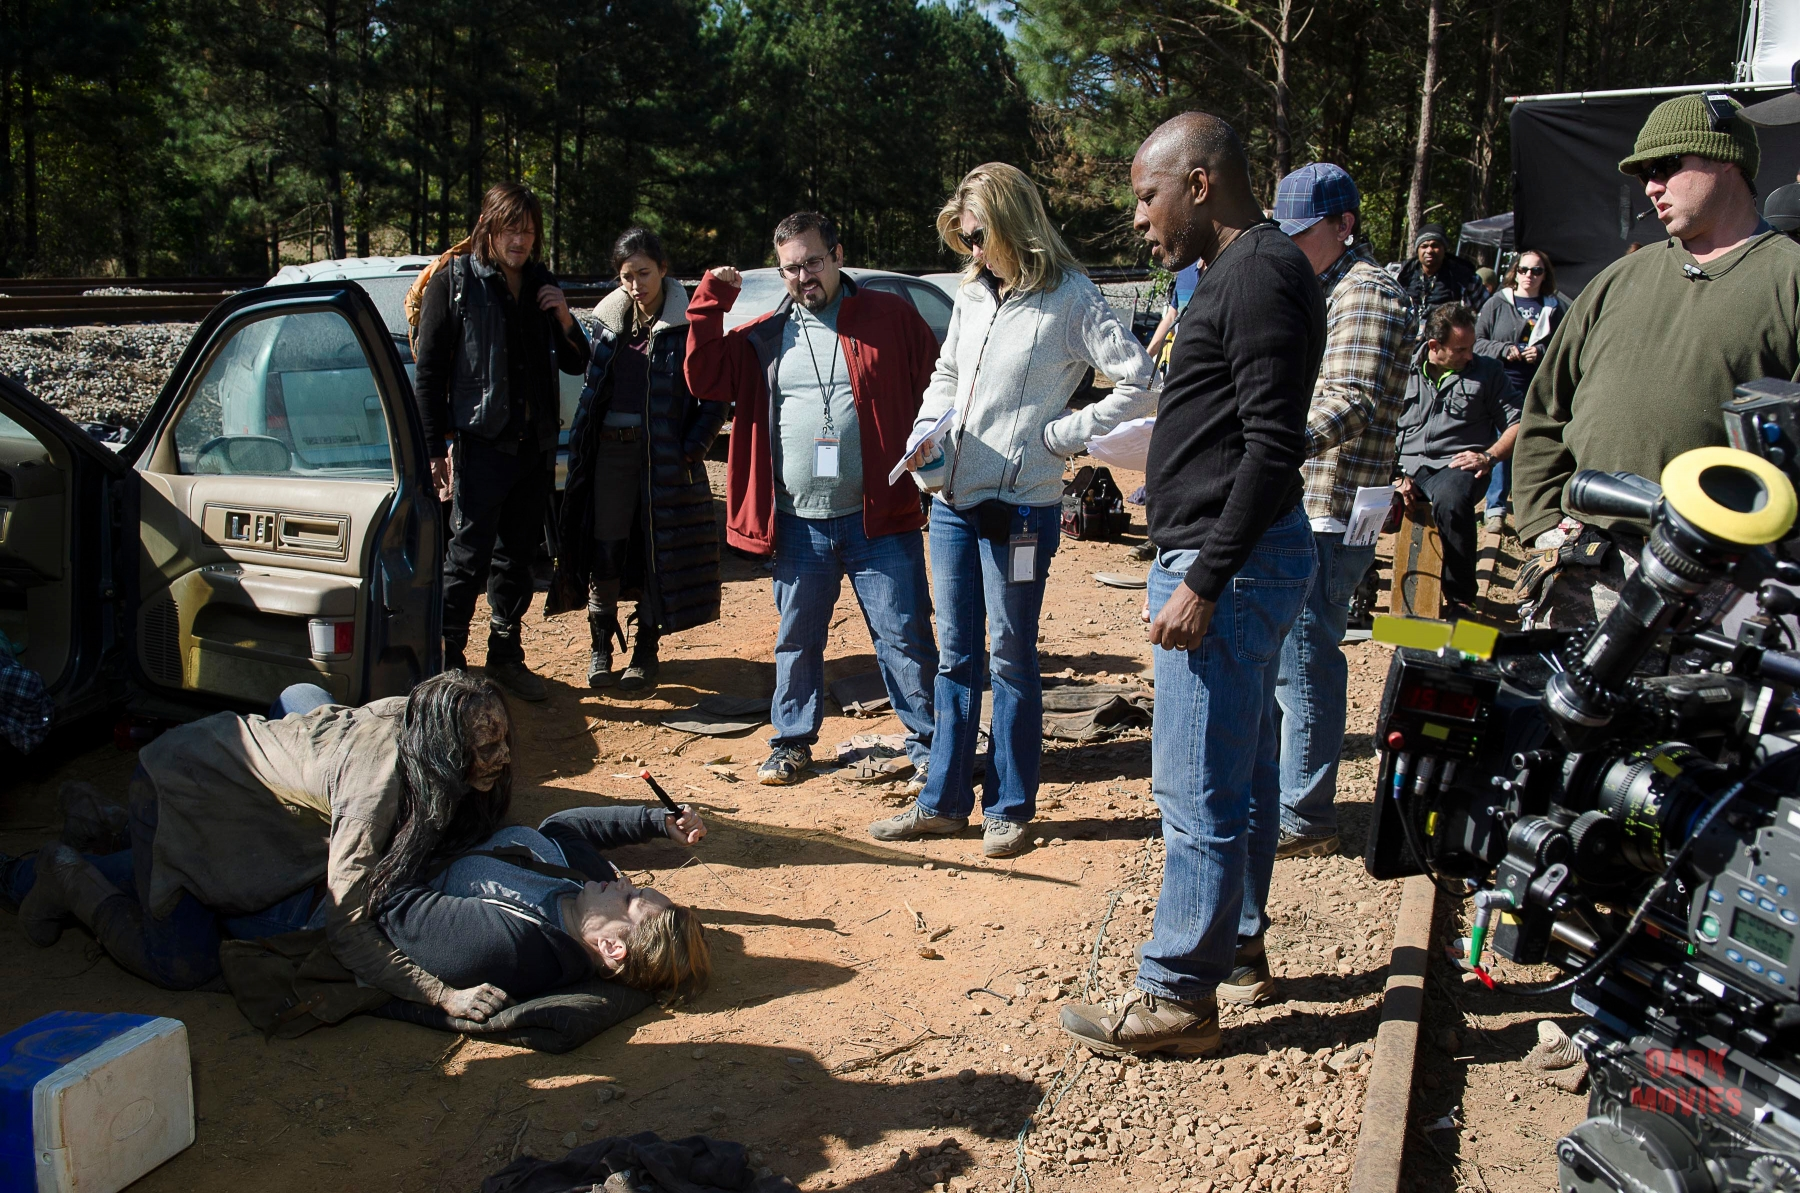 Merritt Wever as Dr. Denise Cloyd, Norman Reedus as Daryl Dixon, Christian Serratos as Rosita Espinosa, and Co-Executive Producer Denise Huth - The Walking Dead _ Season 6, Episode 14 - Photo Credit: Gene Page/AMC